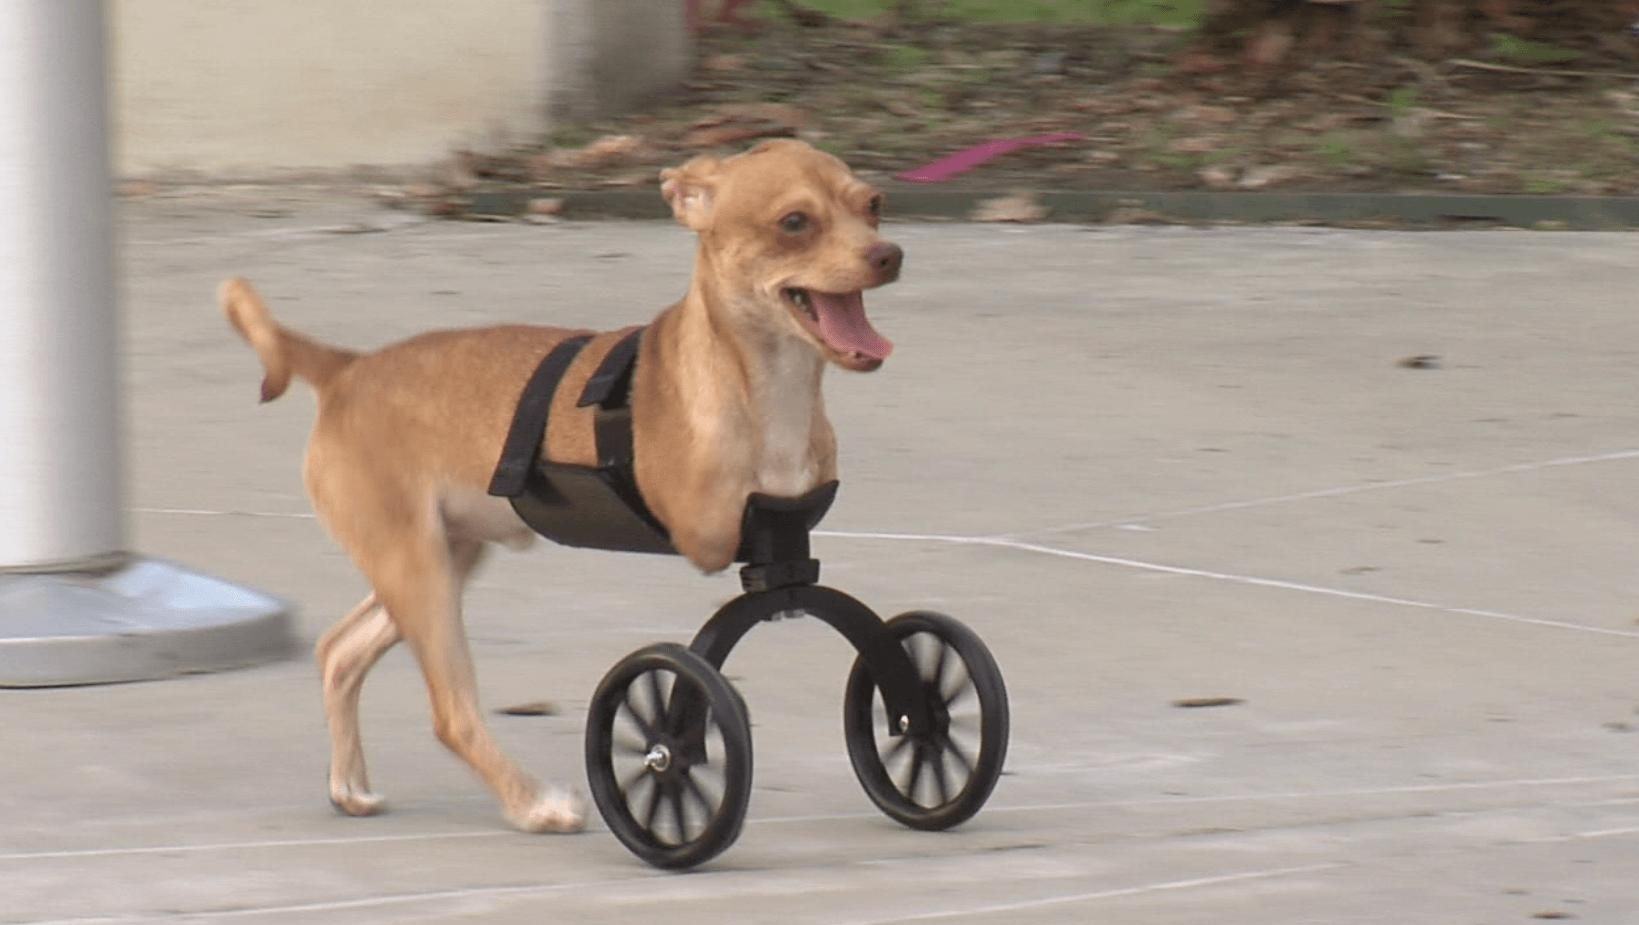 Scooter The 2 Legged Puppy Becomes Internet Sensation Thanks To